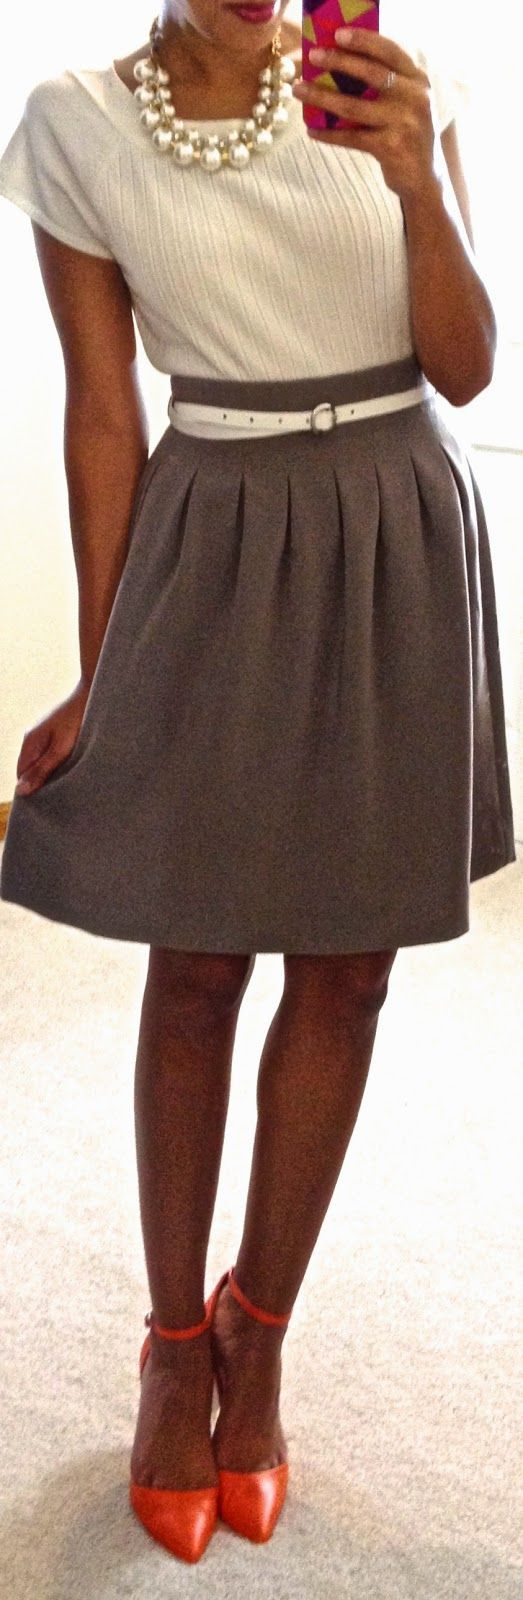 Hello, Gorgeous!: threads./ Cute skirt. Love the pleats and the pop of orange.